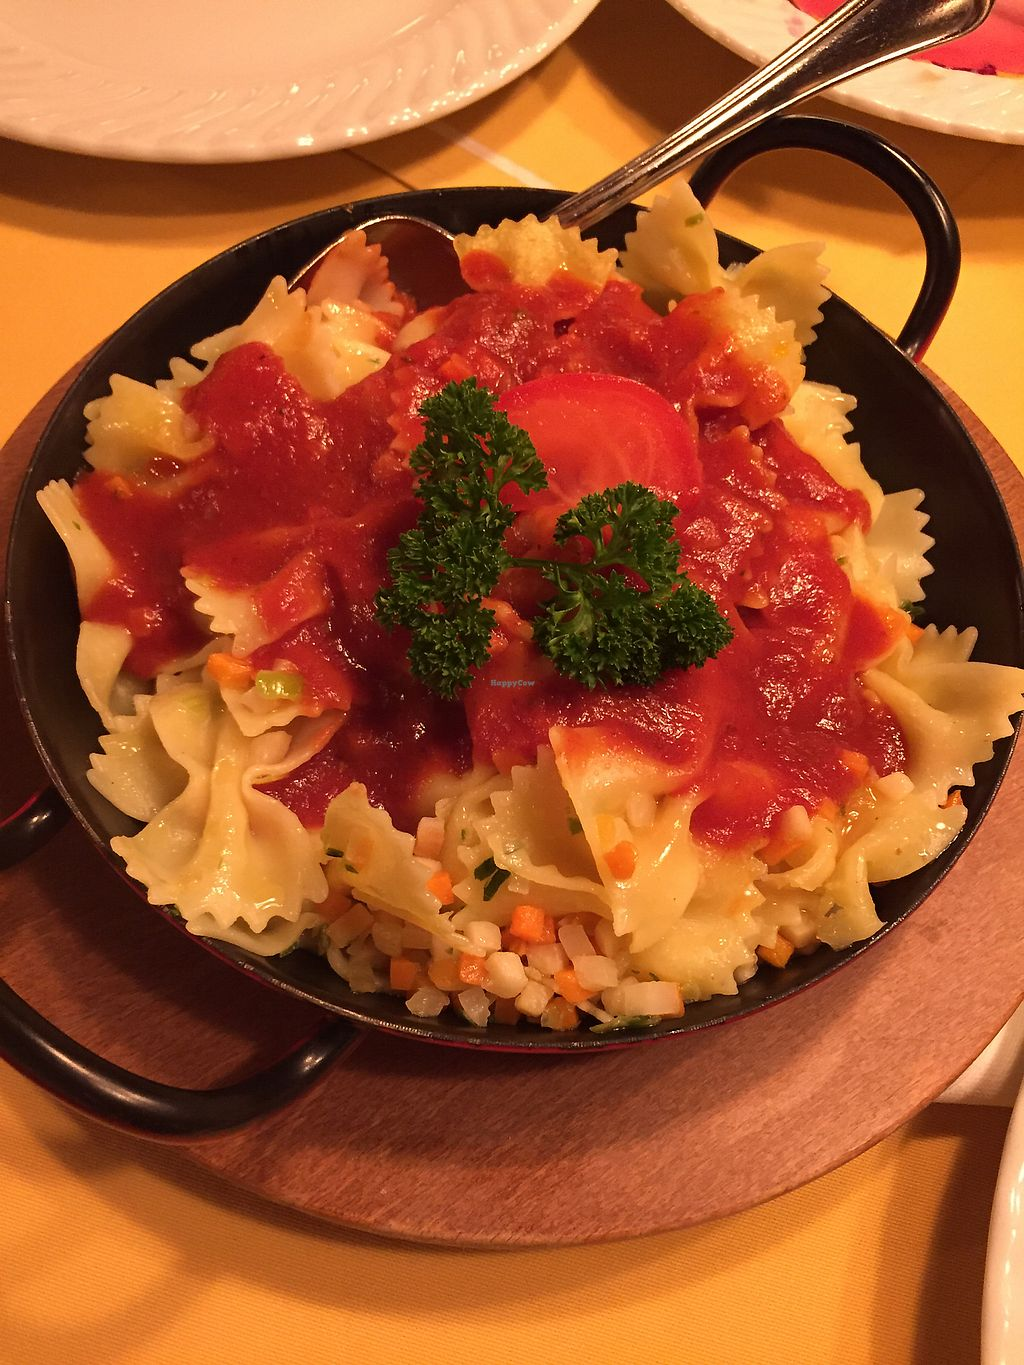 "Photo of Brauerei-Gasthof Hotel Post   by <a href=""/members/profile/RomanovaAlexandra"">RomanovaAlexandra</a> <br/>Noodles with tomato sauce and veggies <br/> January 13, 2018  - <a href='/contact/abuse/image/82640/346220'>Report</a>"